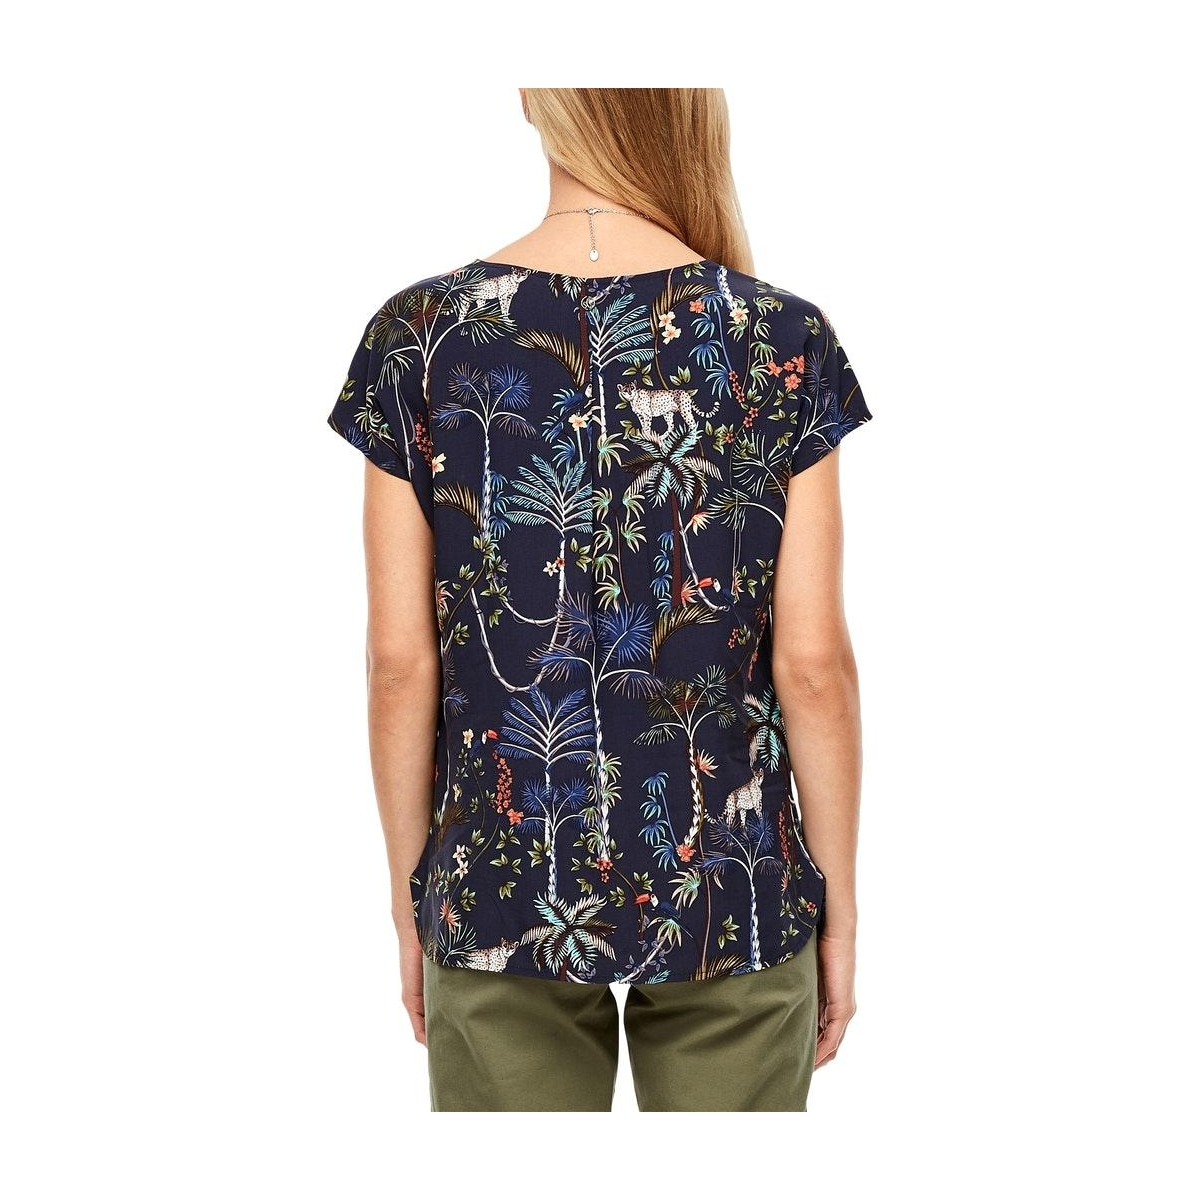 oversized blouse met motief 05006123947 s.oliver blouse 58a2